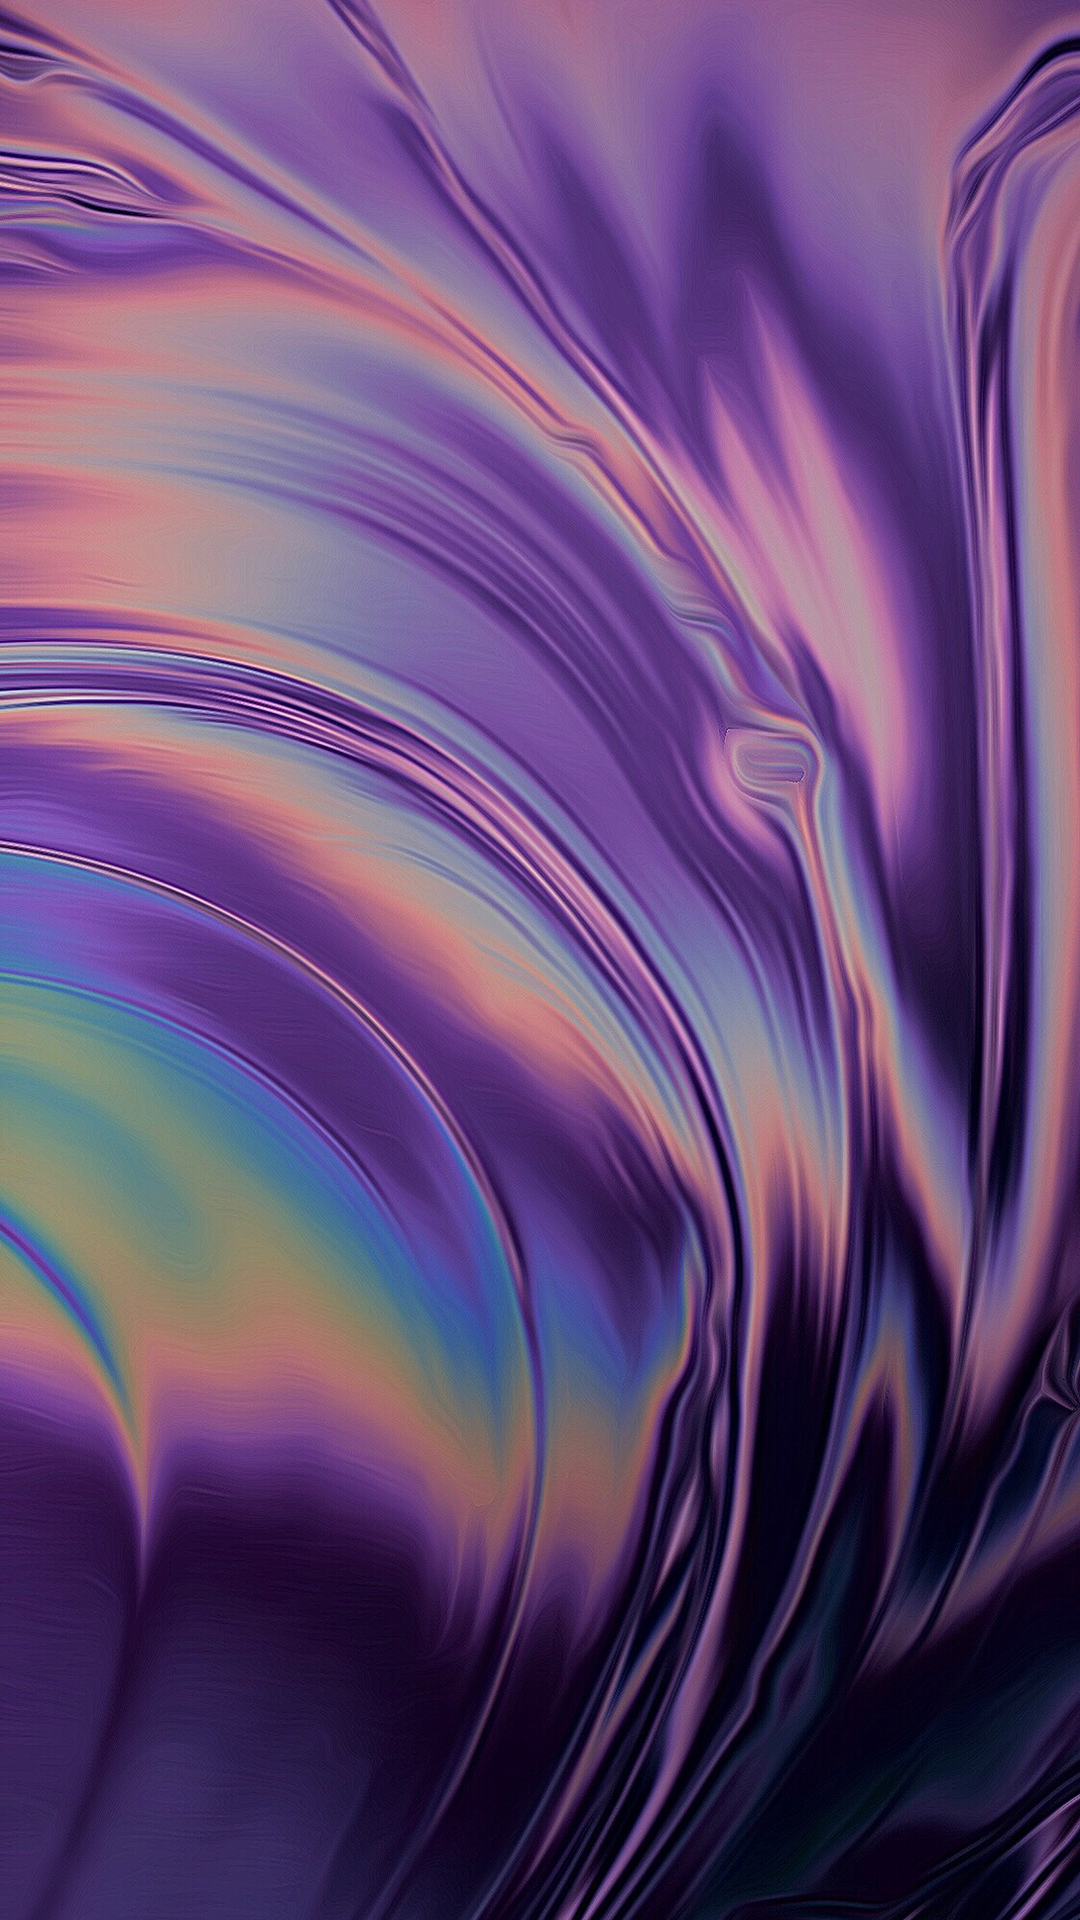 New Macbook Pro Inspired Wallpapers For Iphone